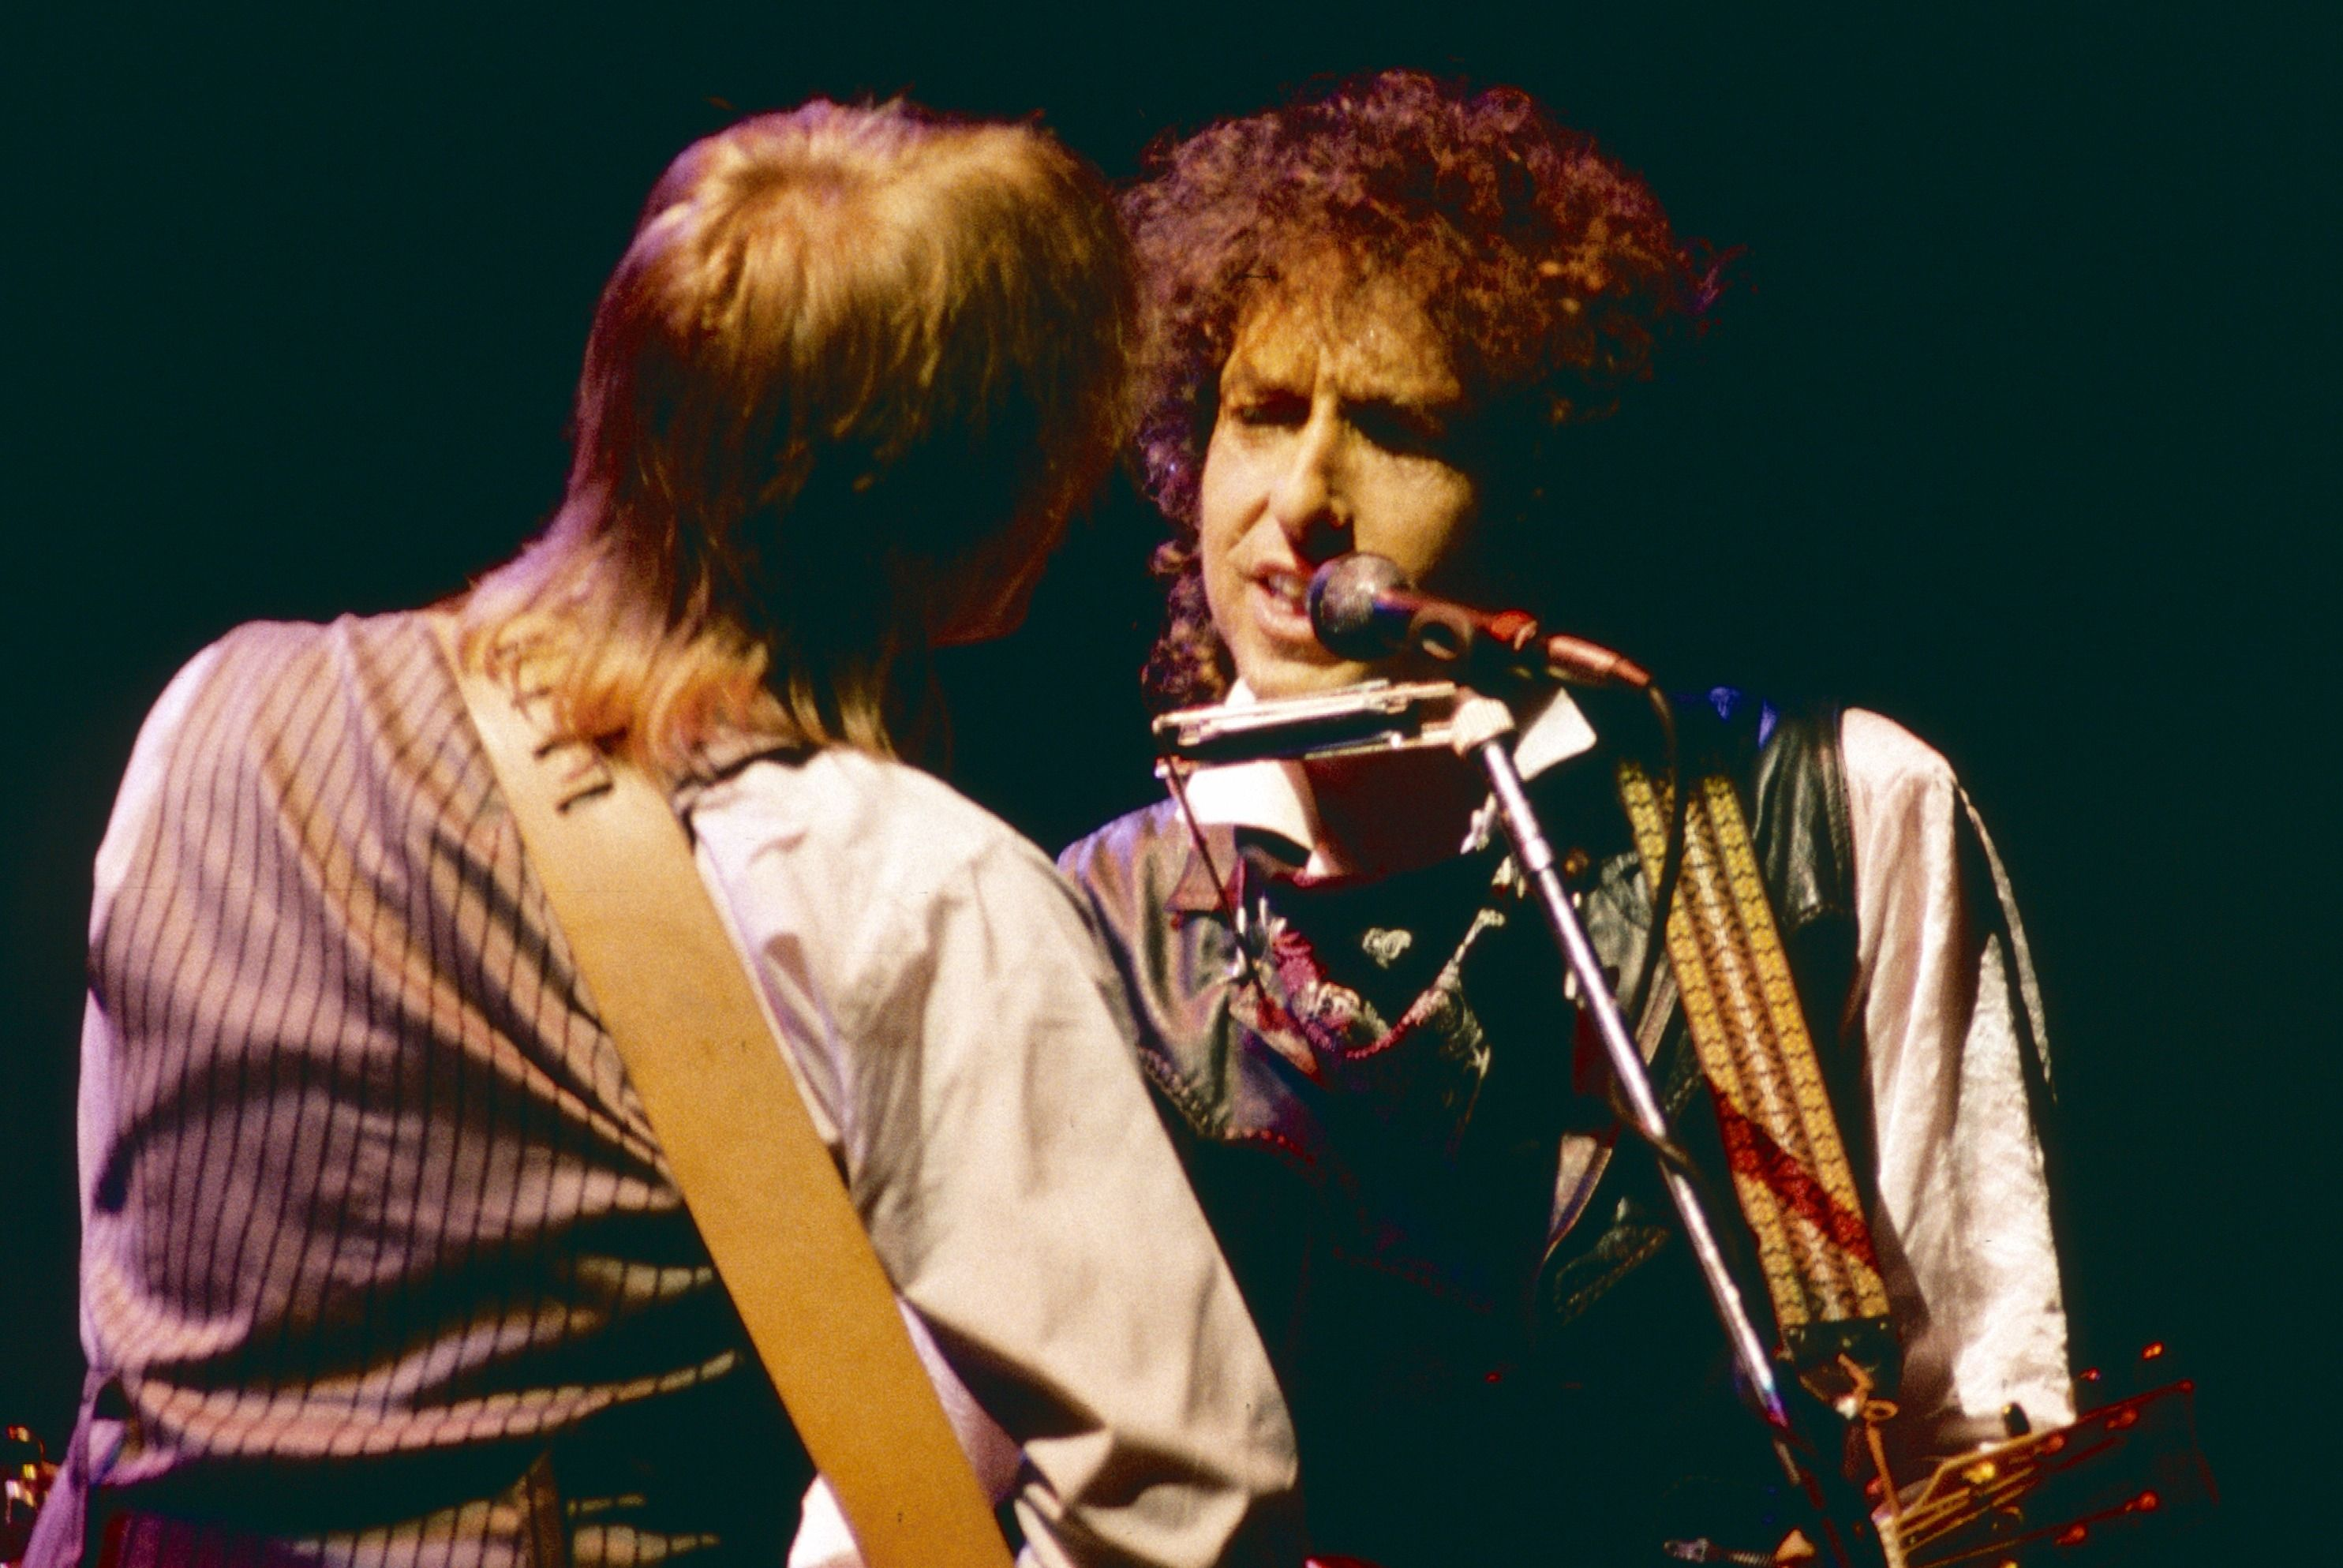 Petty and Dylan together in concert in 1986.